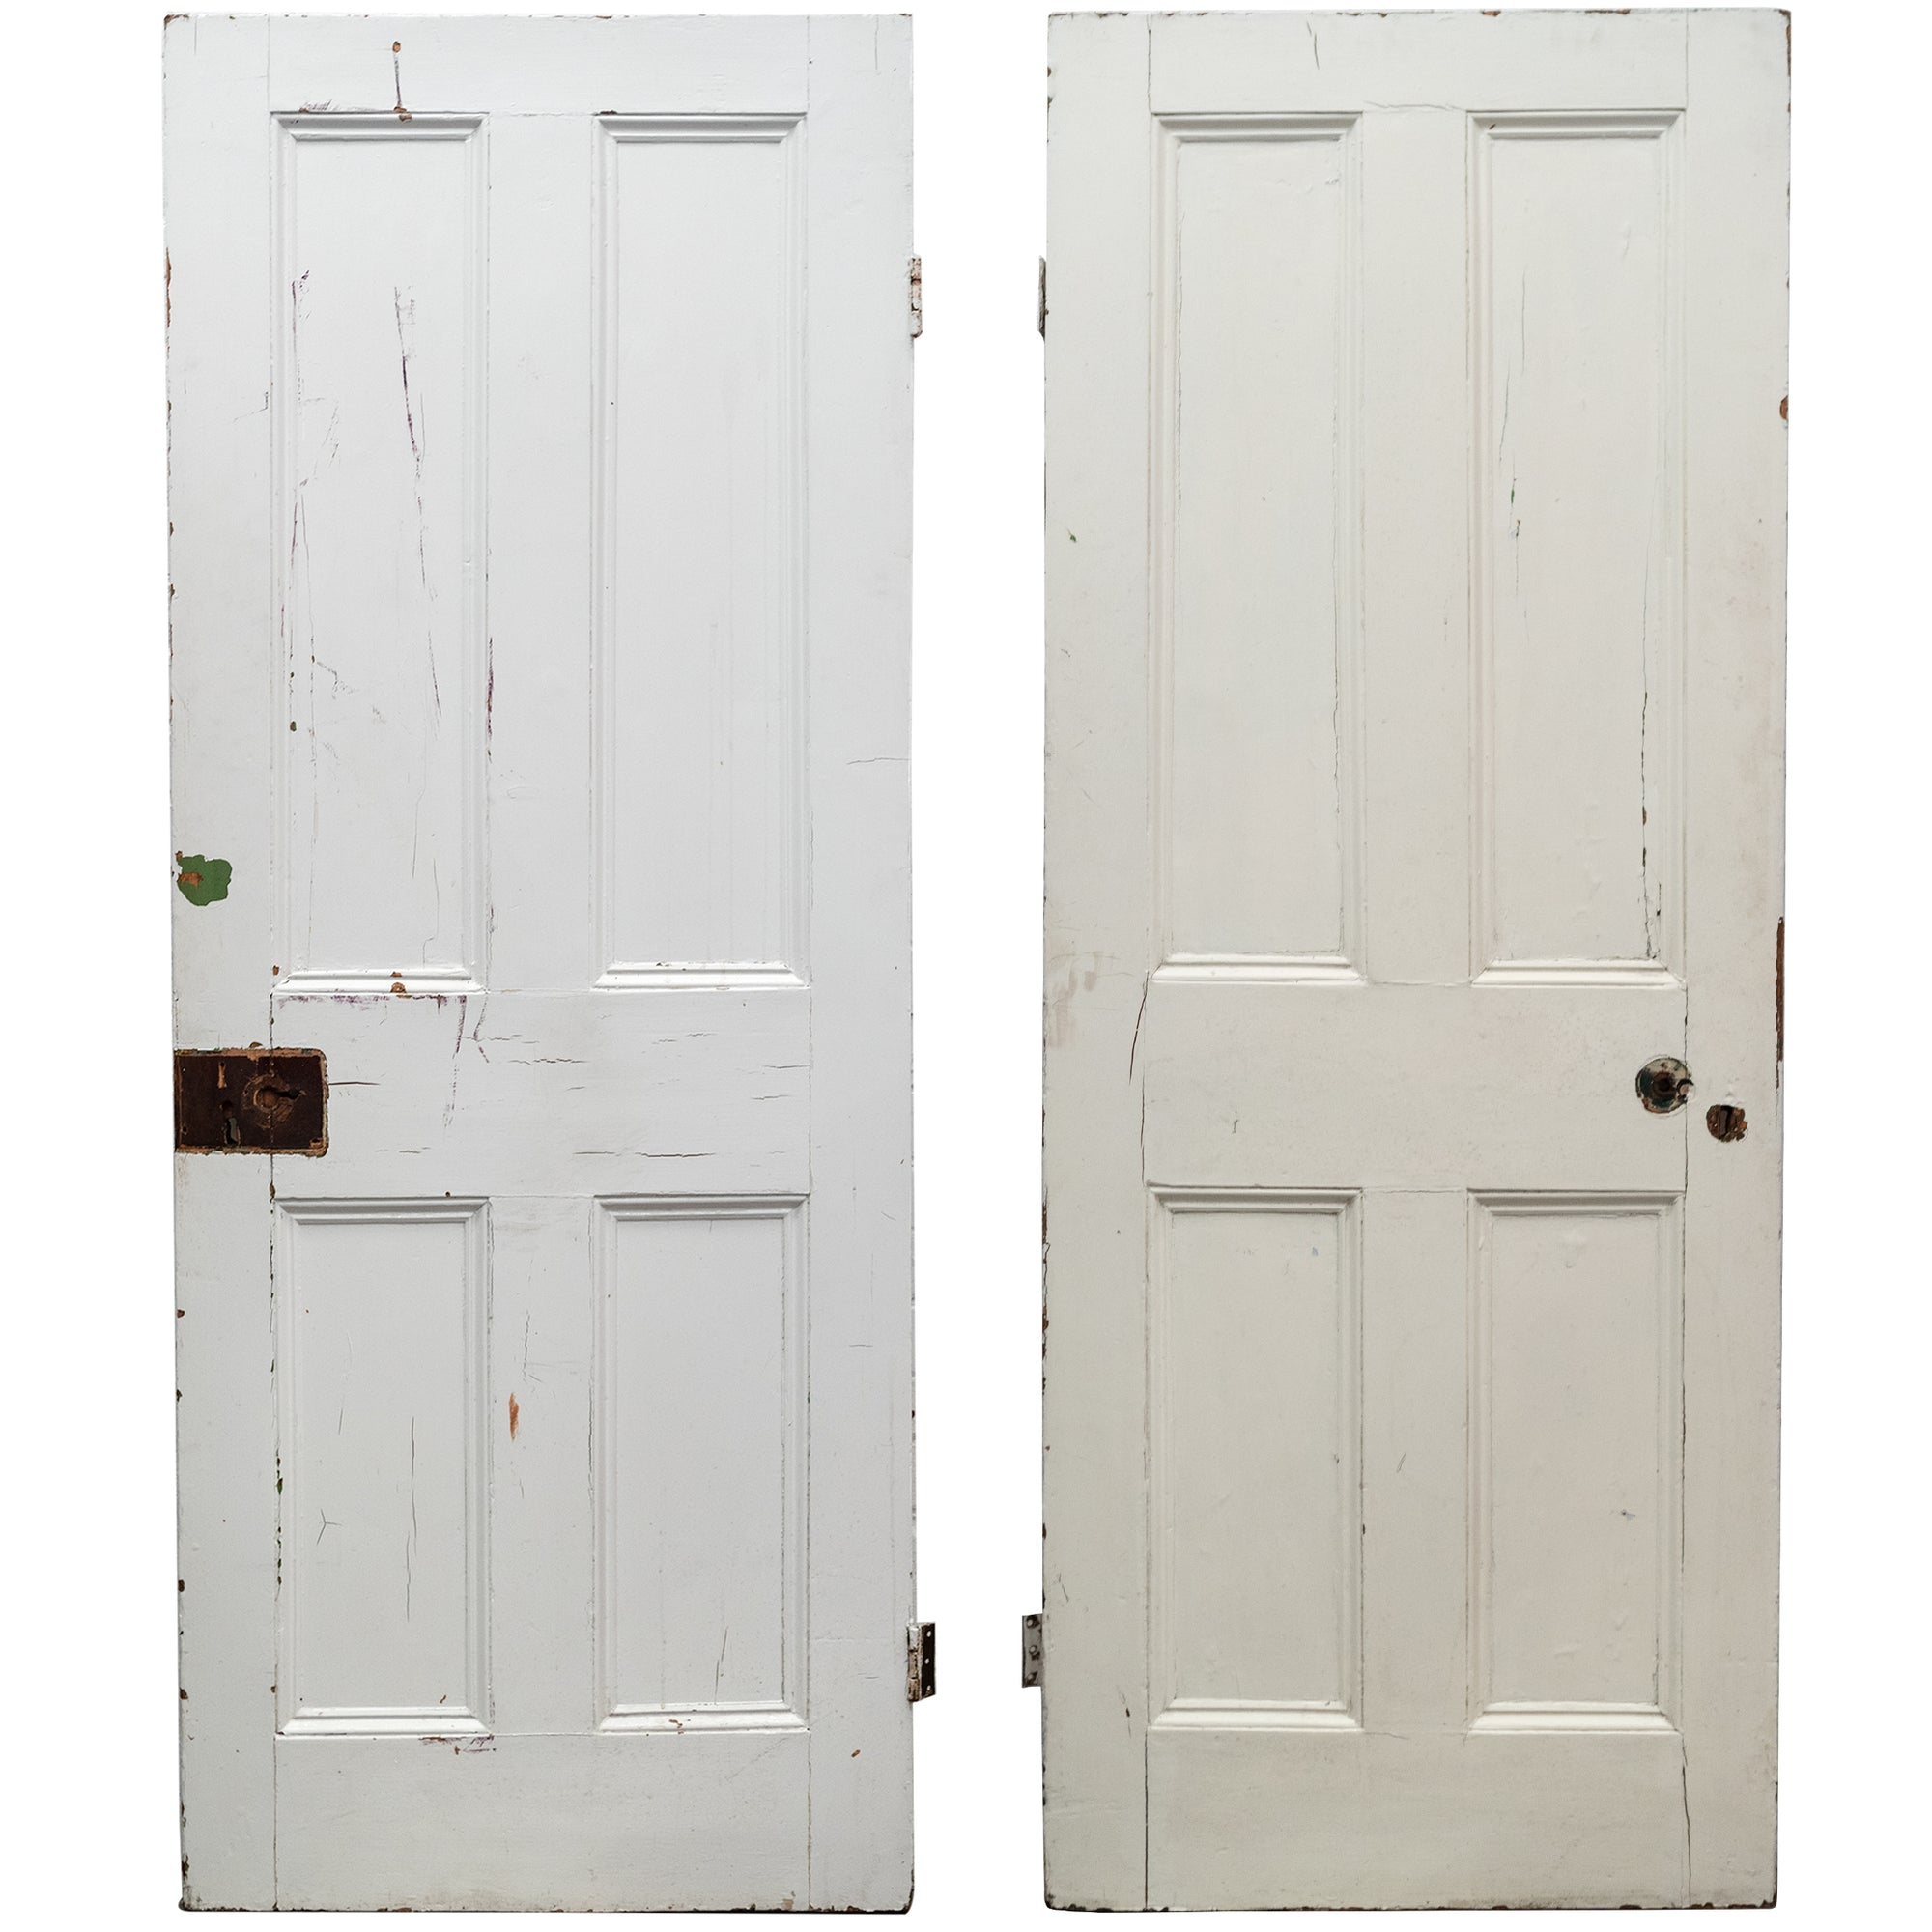 Antique Victorian 4 Panel Door - 184cm x 75.5cm